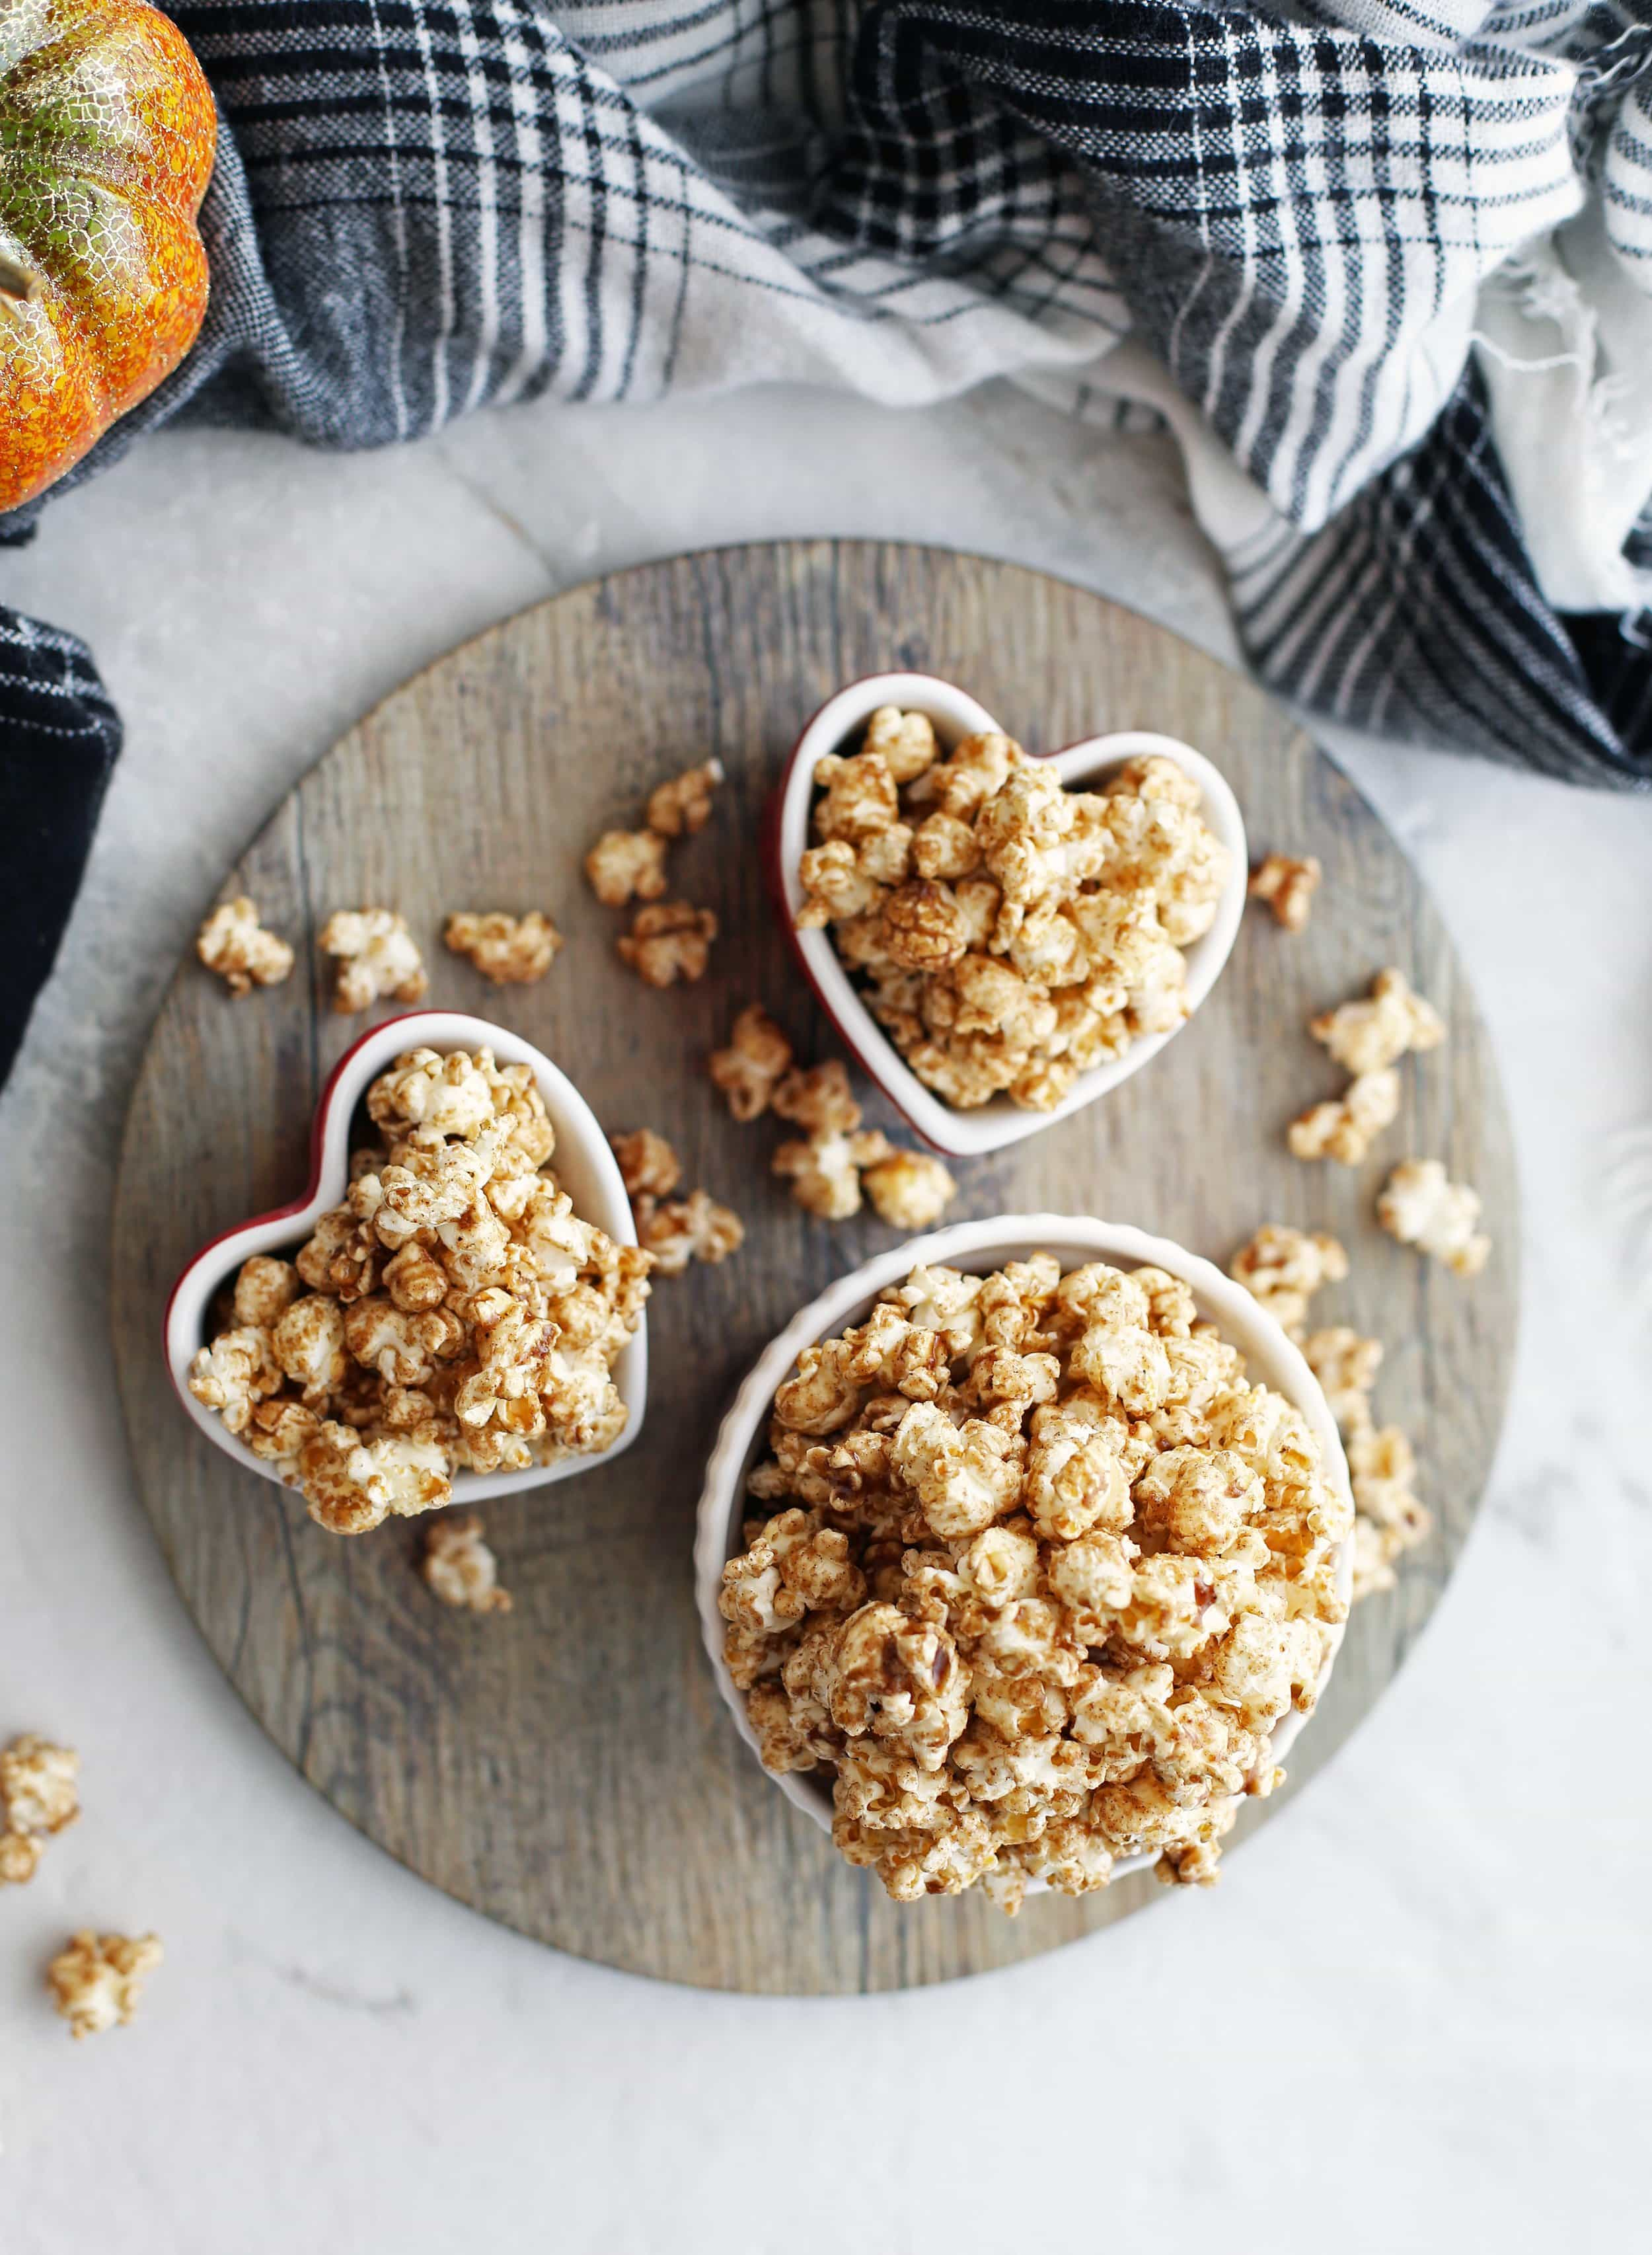 Overhead view of homemade pumpkin spice butterscotch popcorn in three bowls.